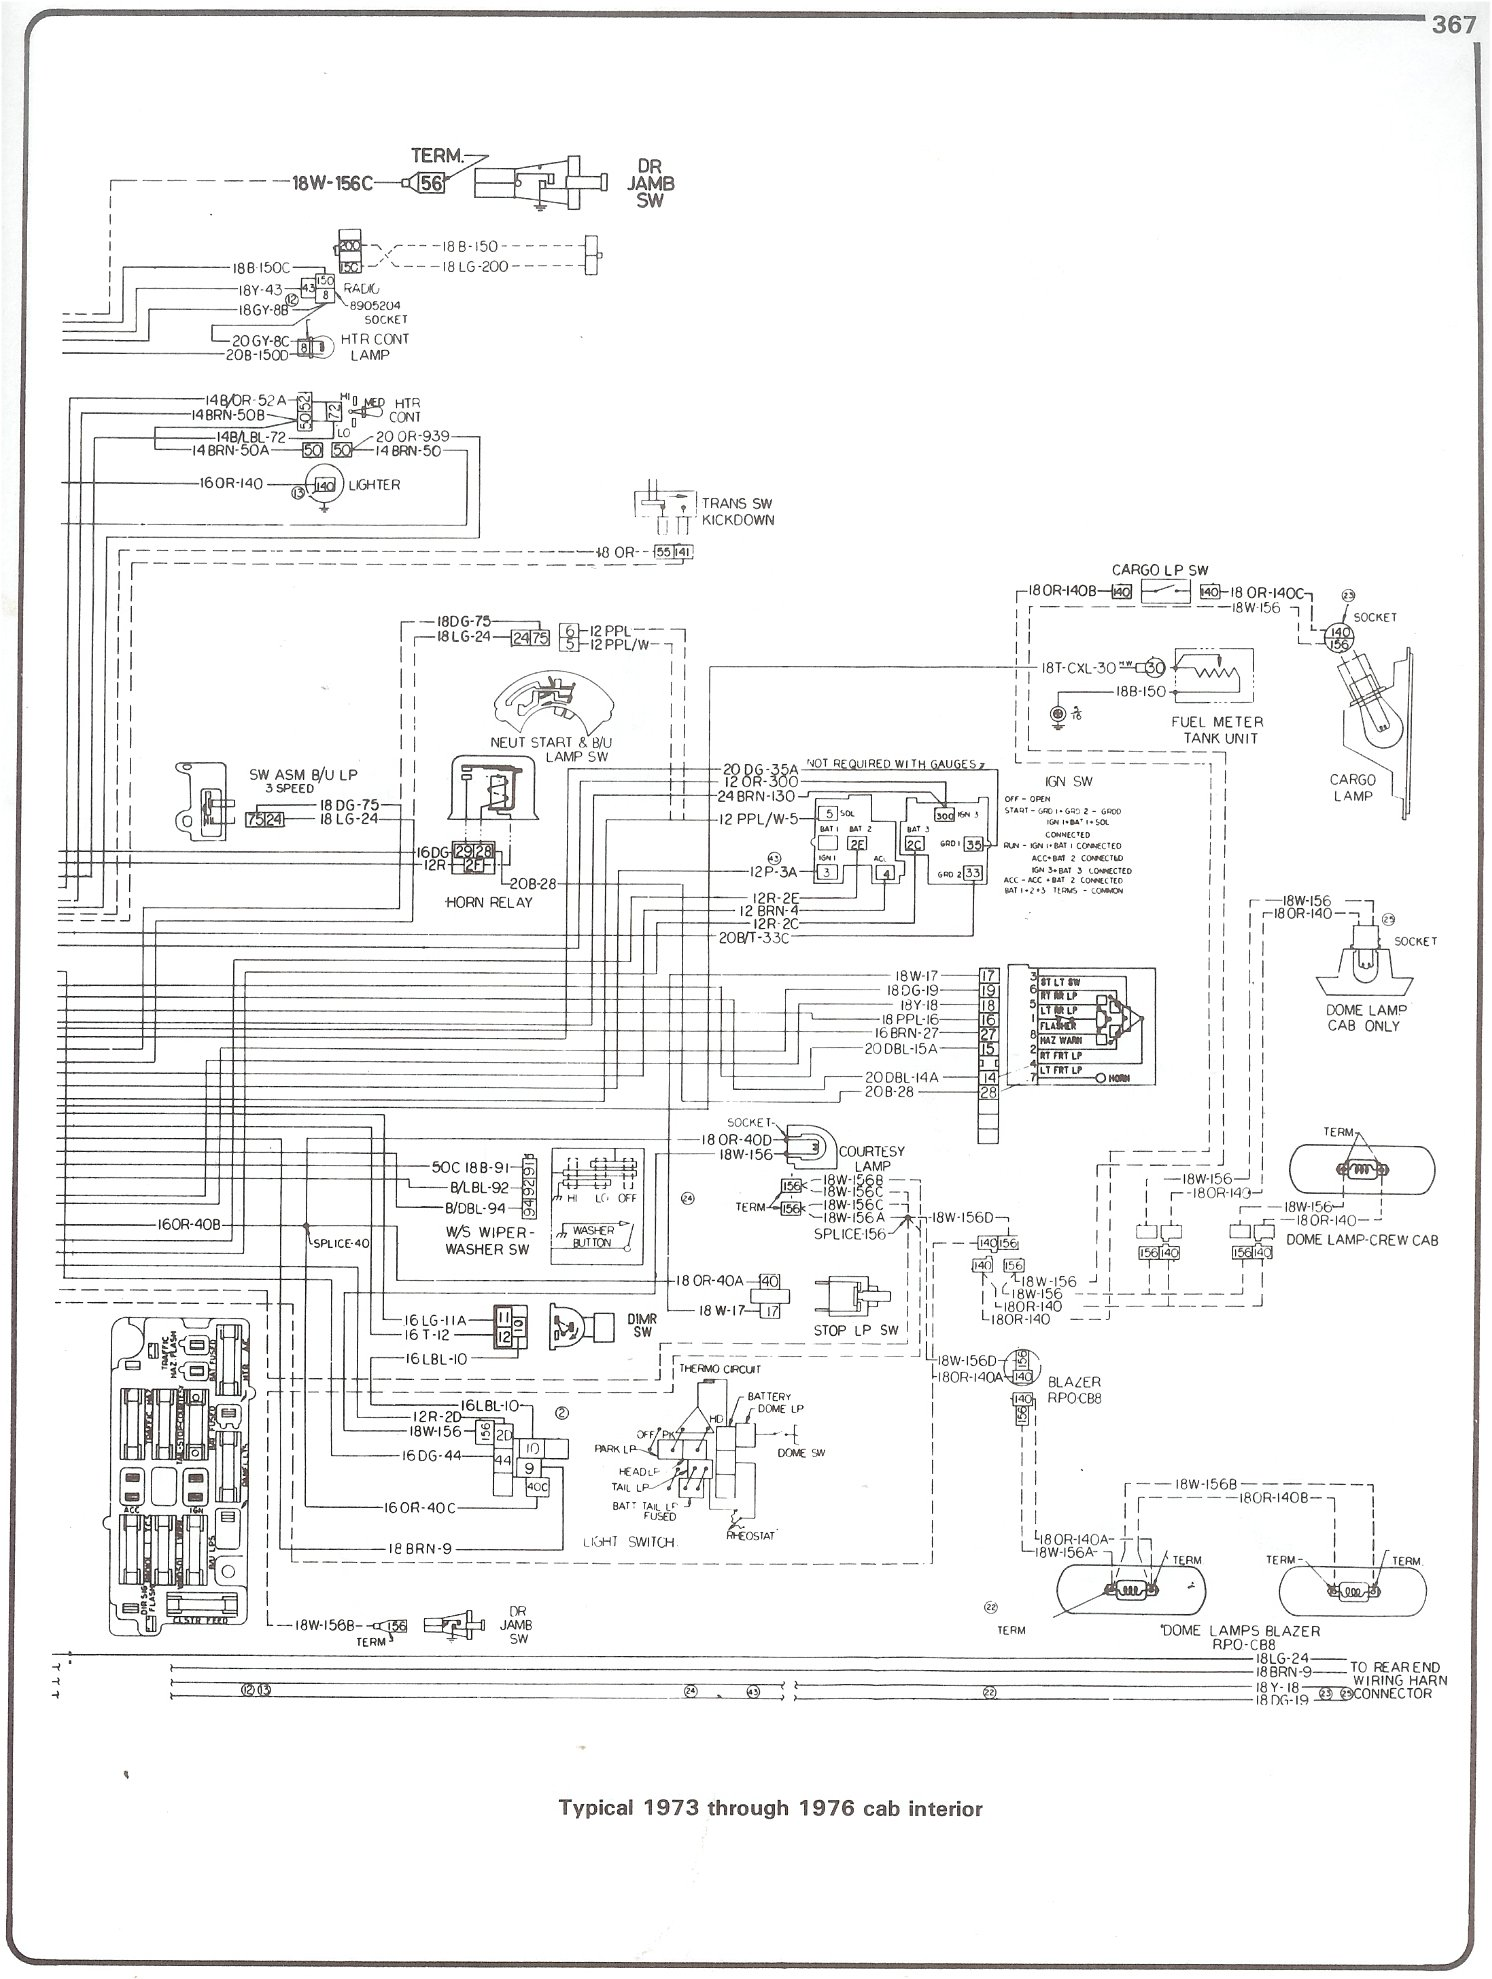 83 chevy truck wiring diagram online wiring diagram data 88 crx fuel delivery diagram #13